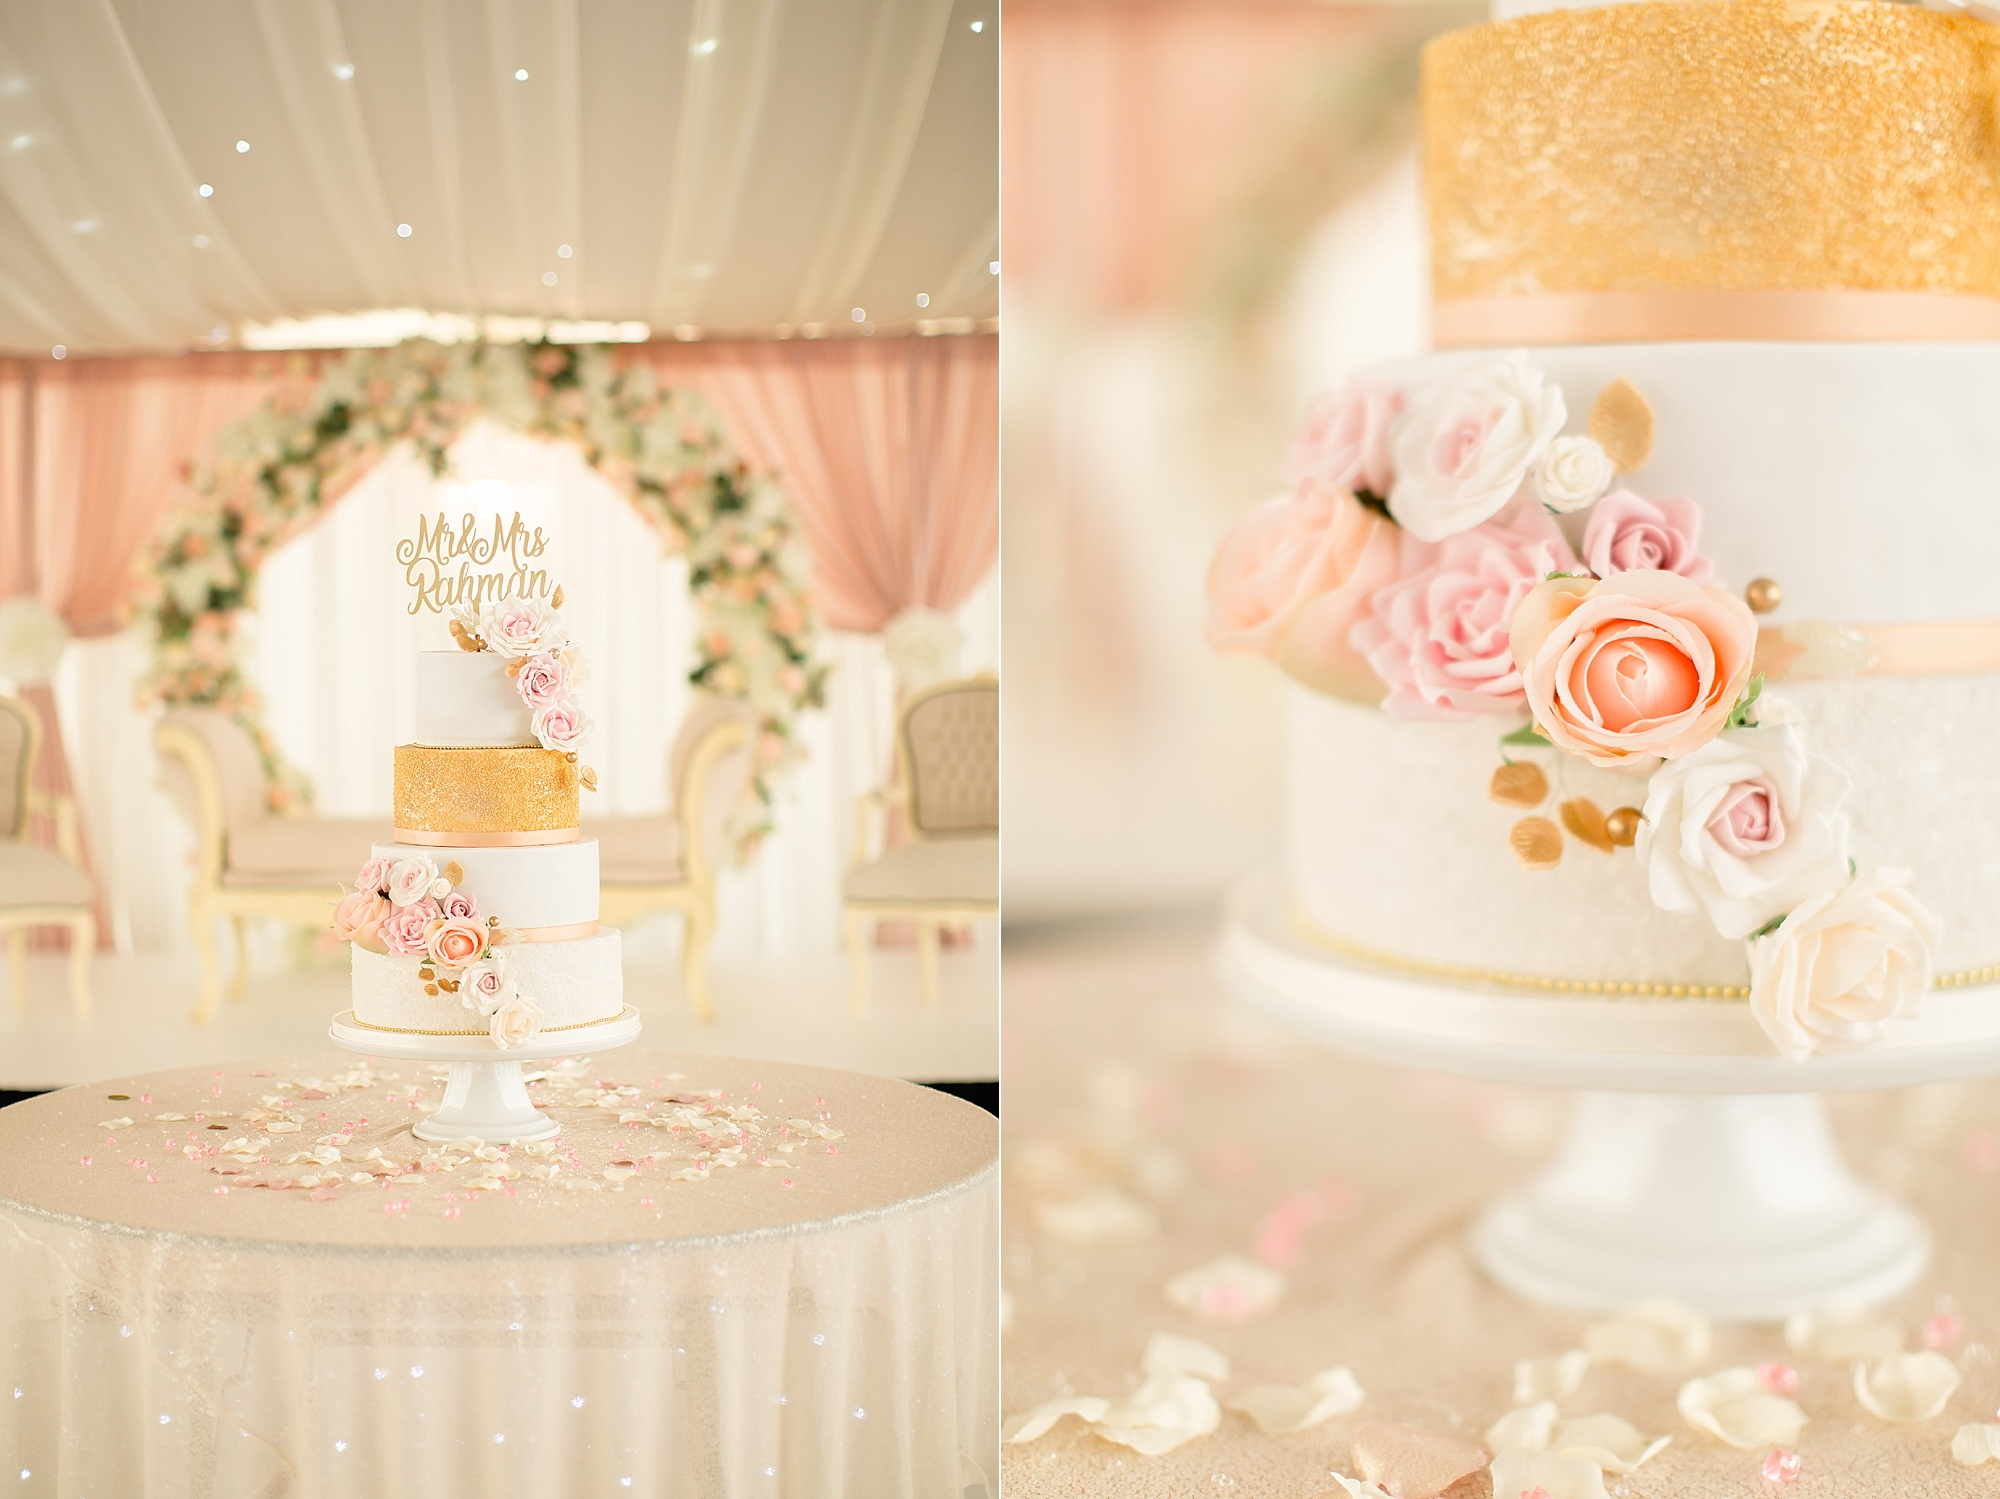 Wedding Cake Details at Hilton Hall, Wolverhampton